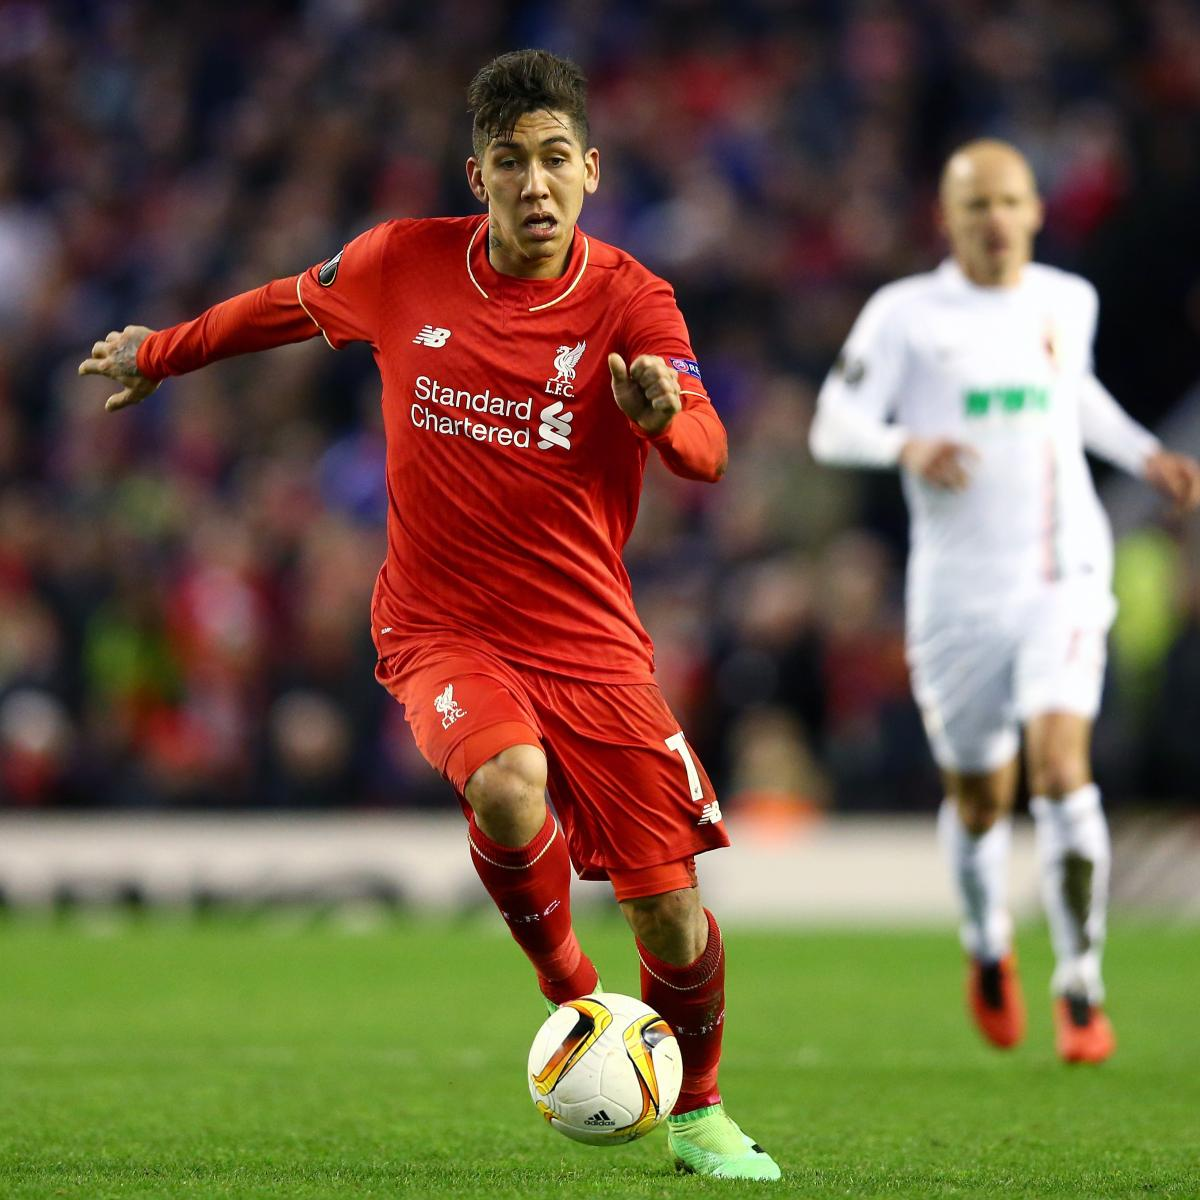 Psg Vs Manchester City Live Score Highlights From: Southampton Vs. Liverpool: Live Score, Highlights From